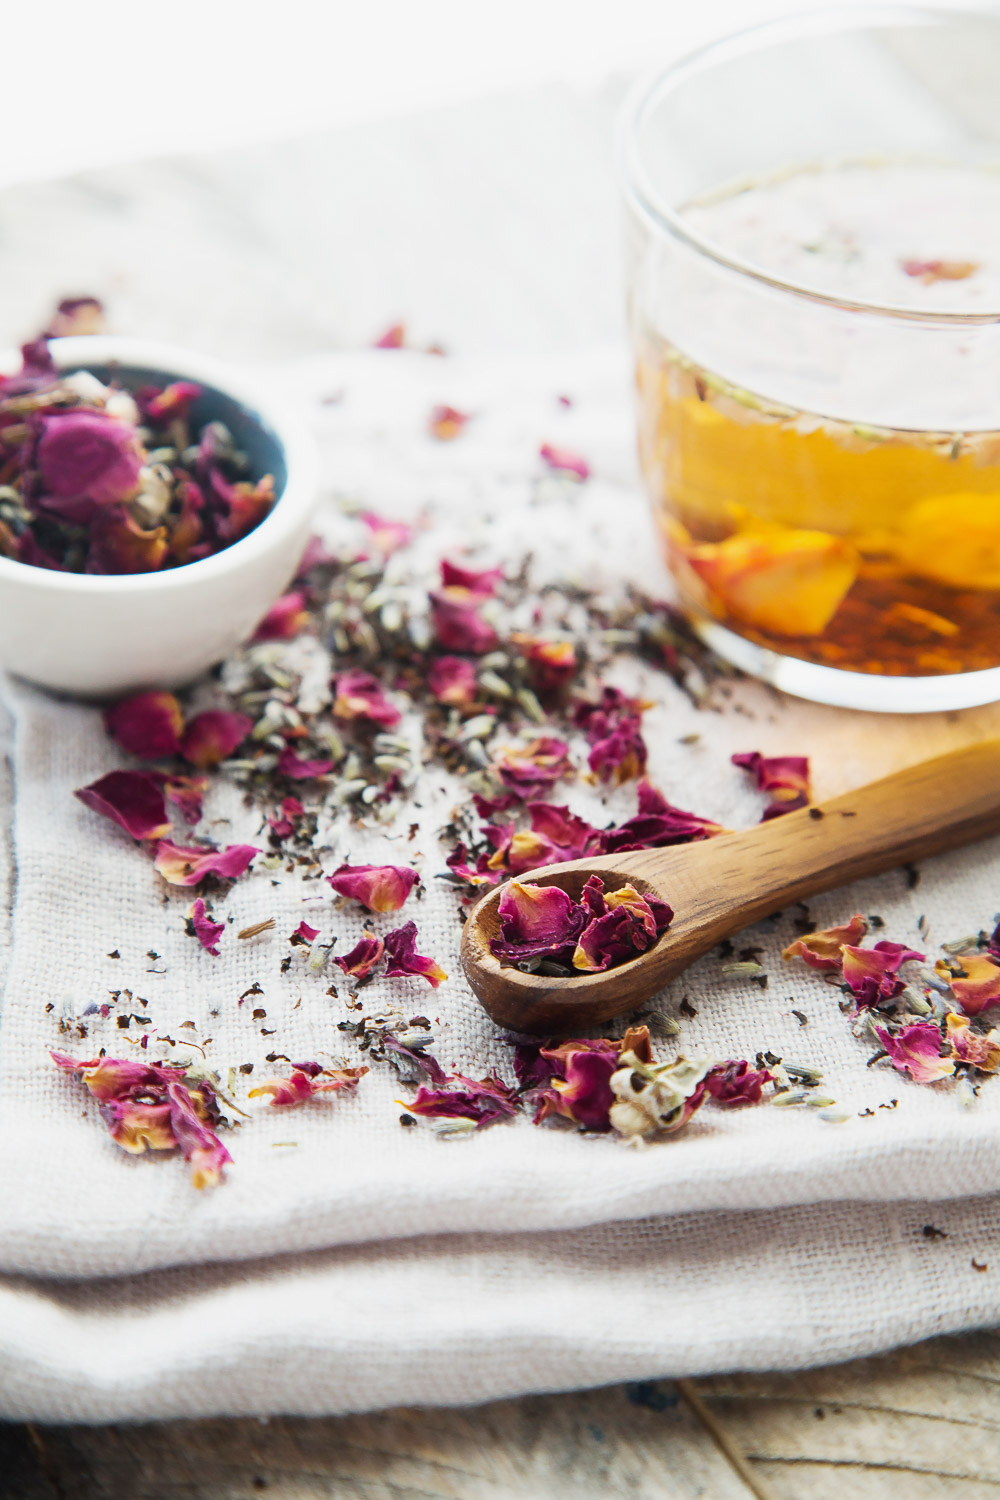 brewing rose petal tea